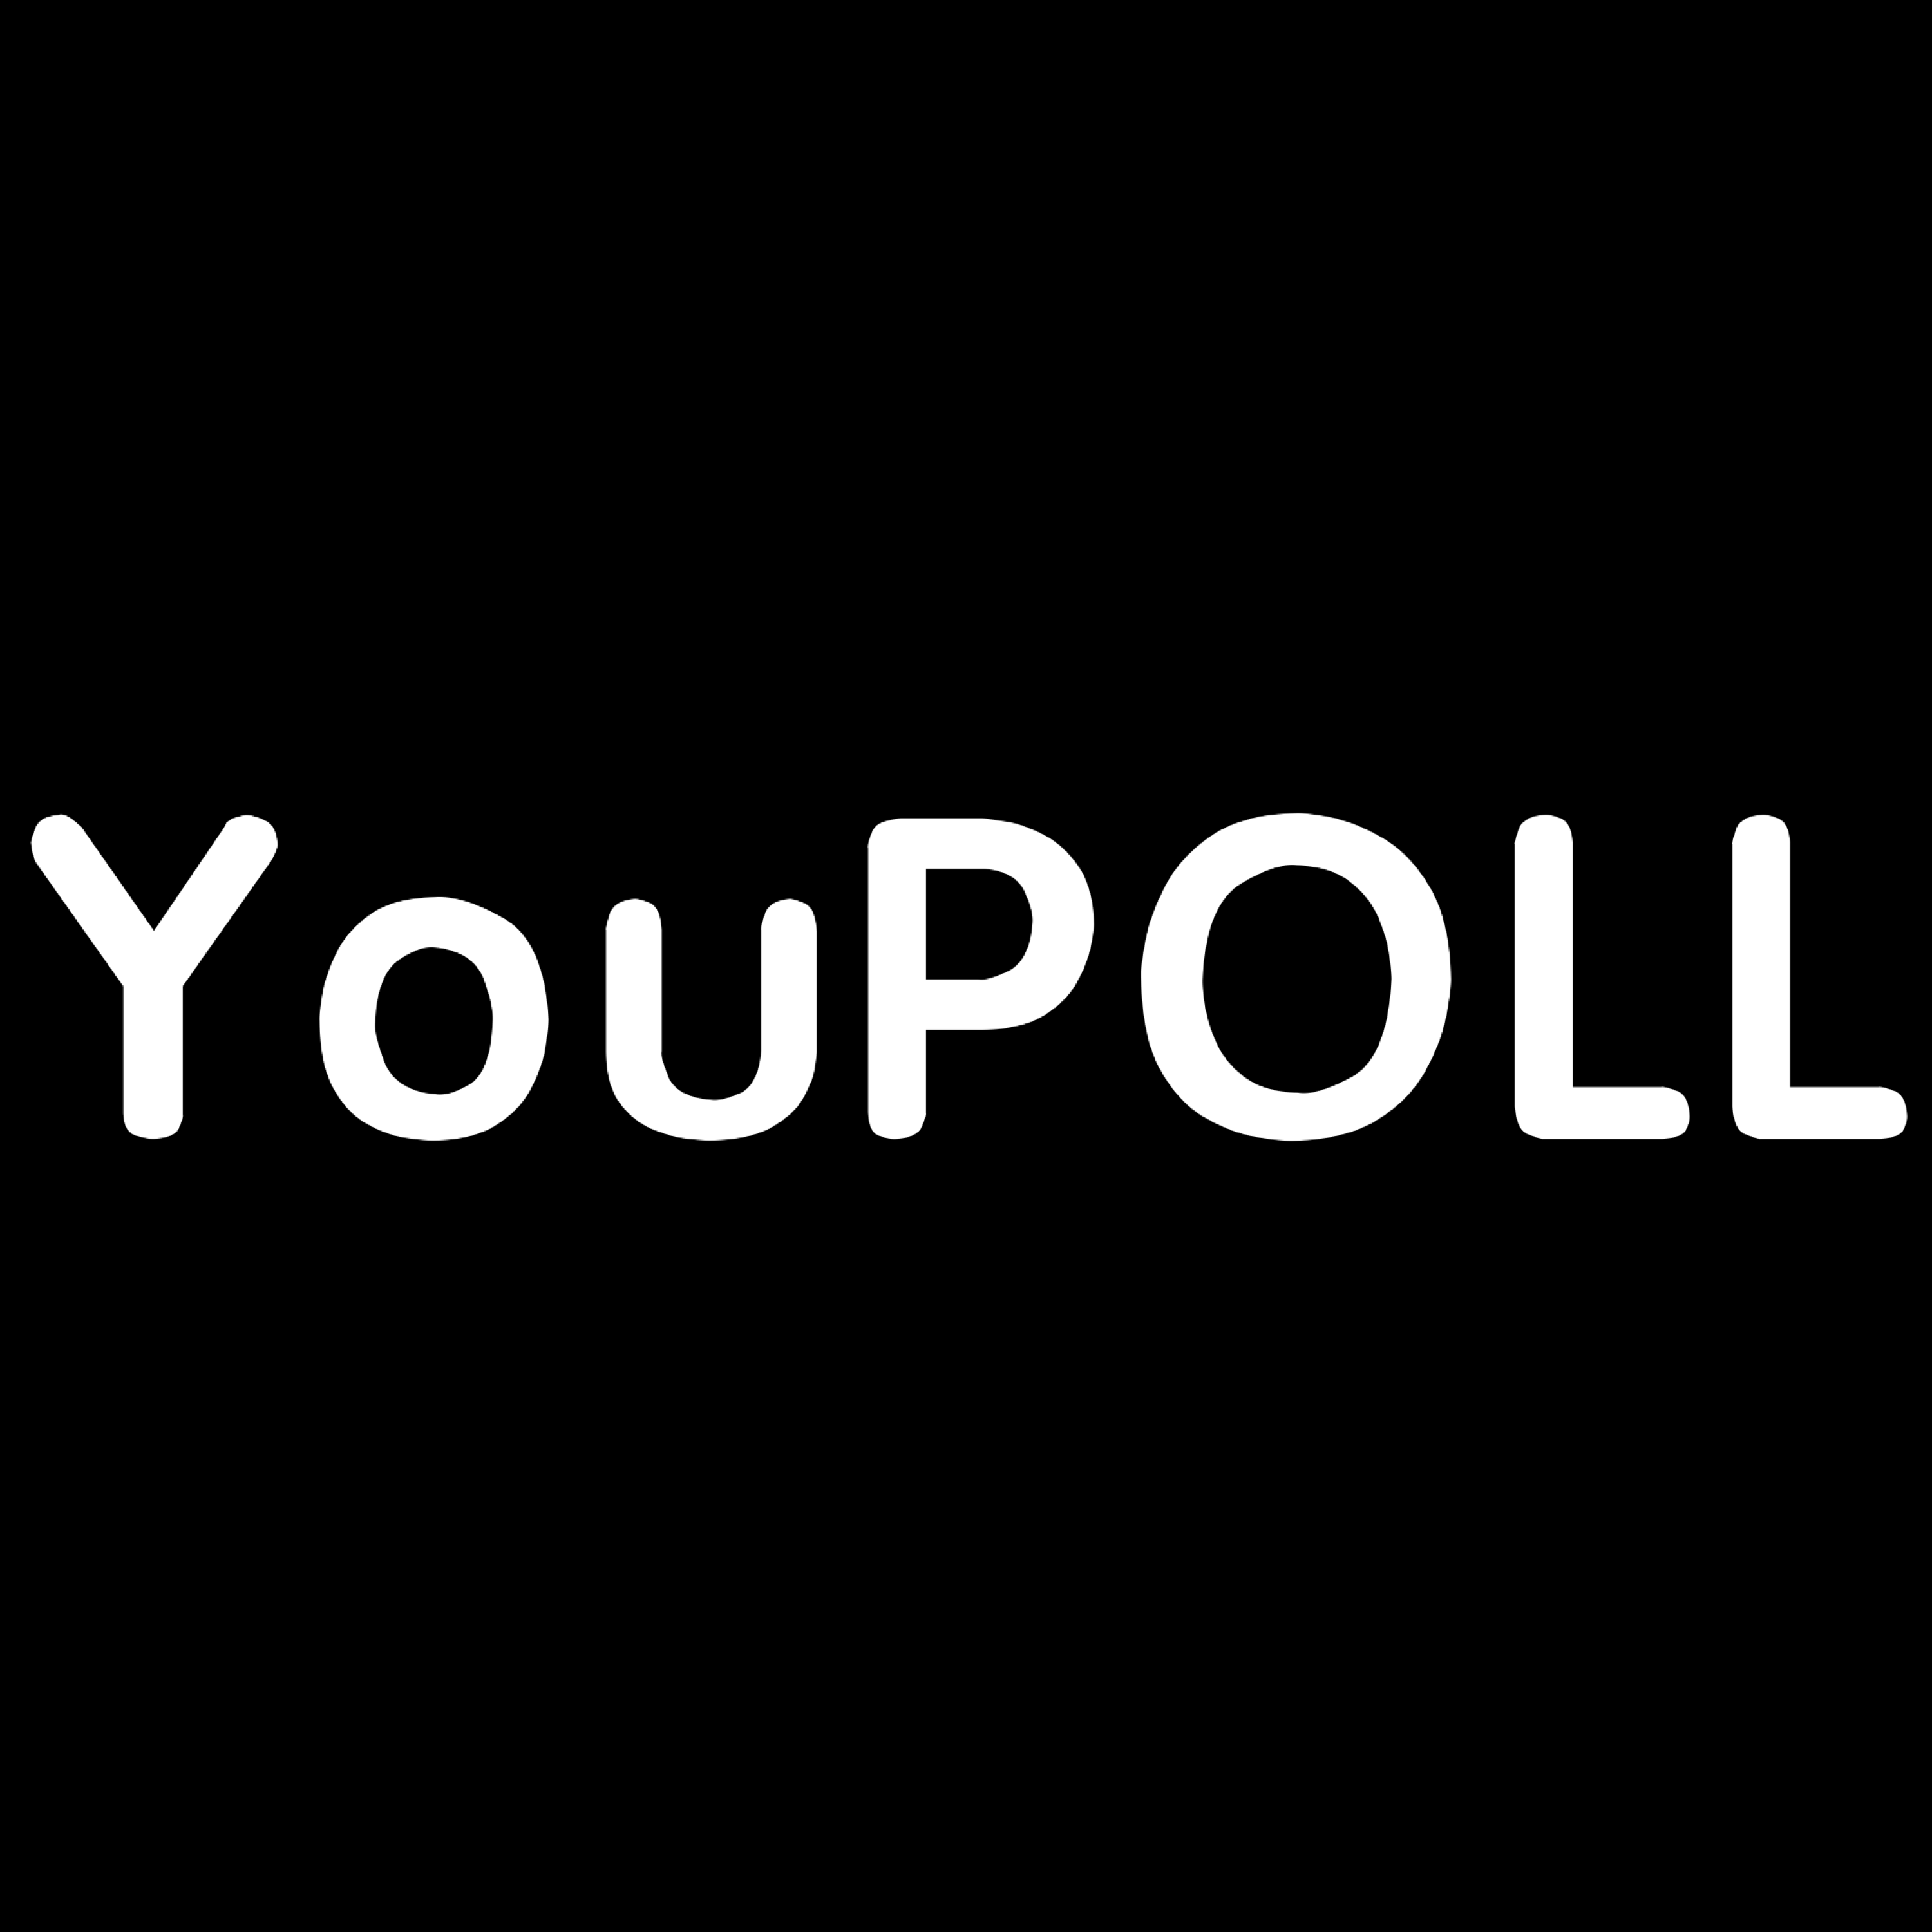 YouPOLL App